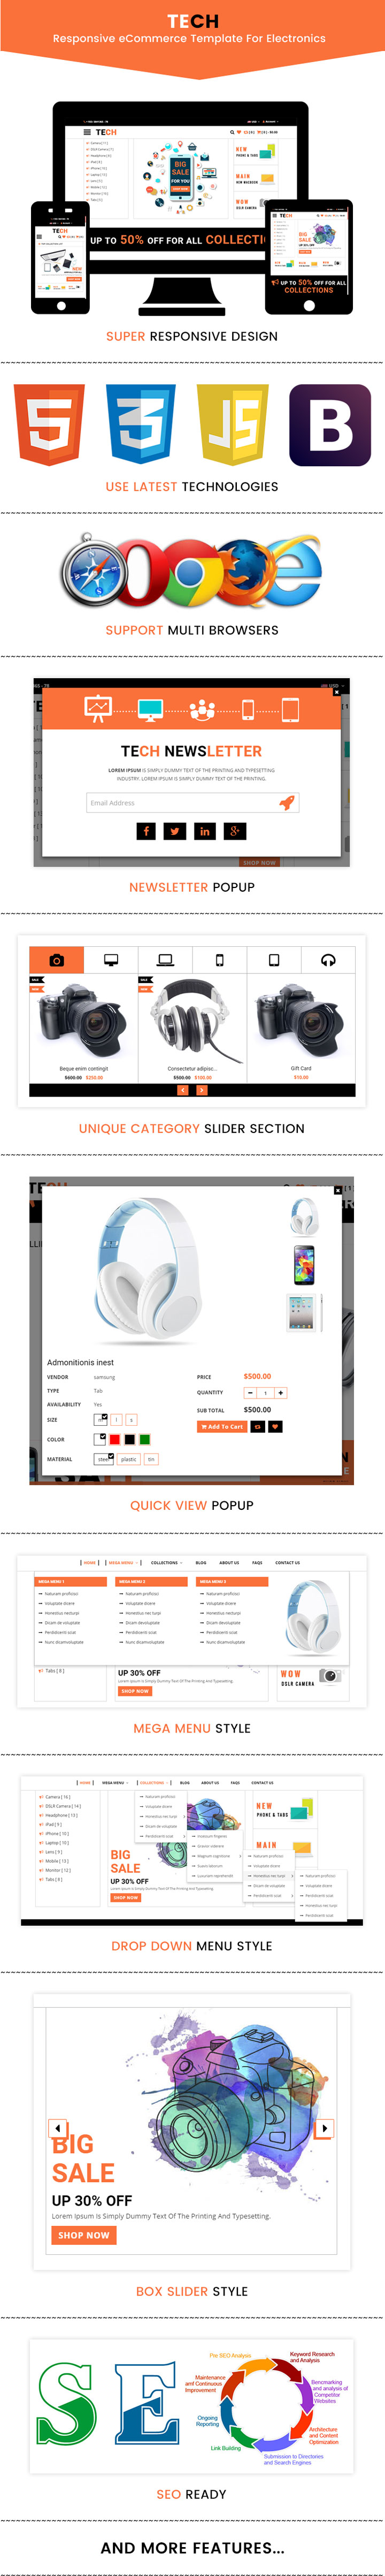 themetidy-Tech-Responsive-eCommerce-Bootstrap-Template-For-Electronics-feature-list-image